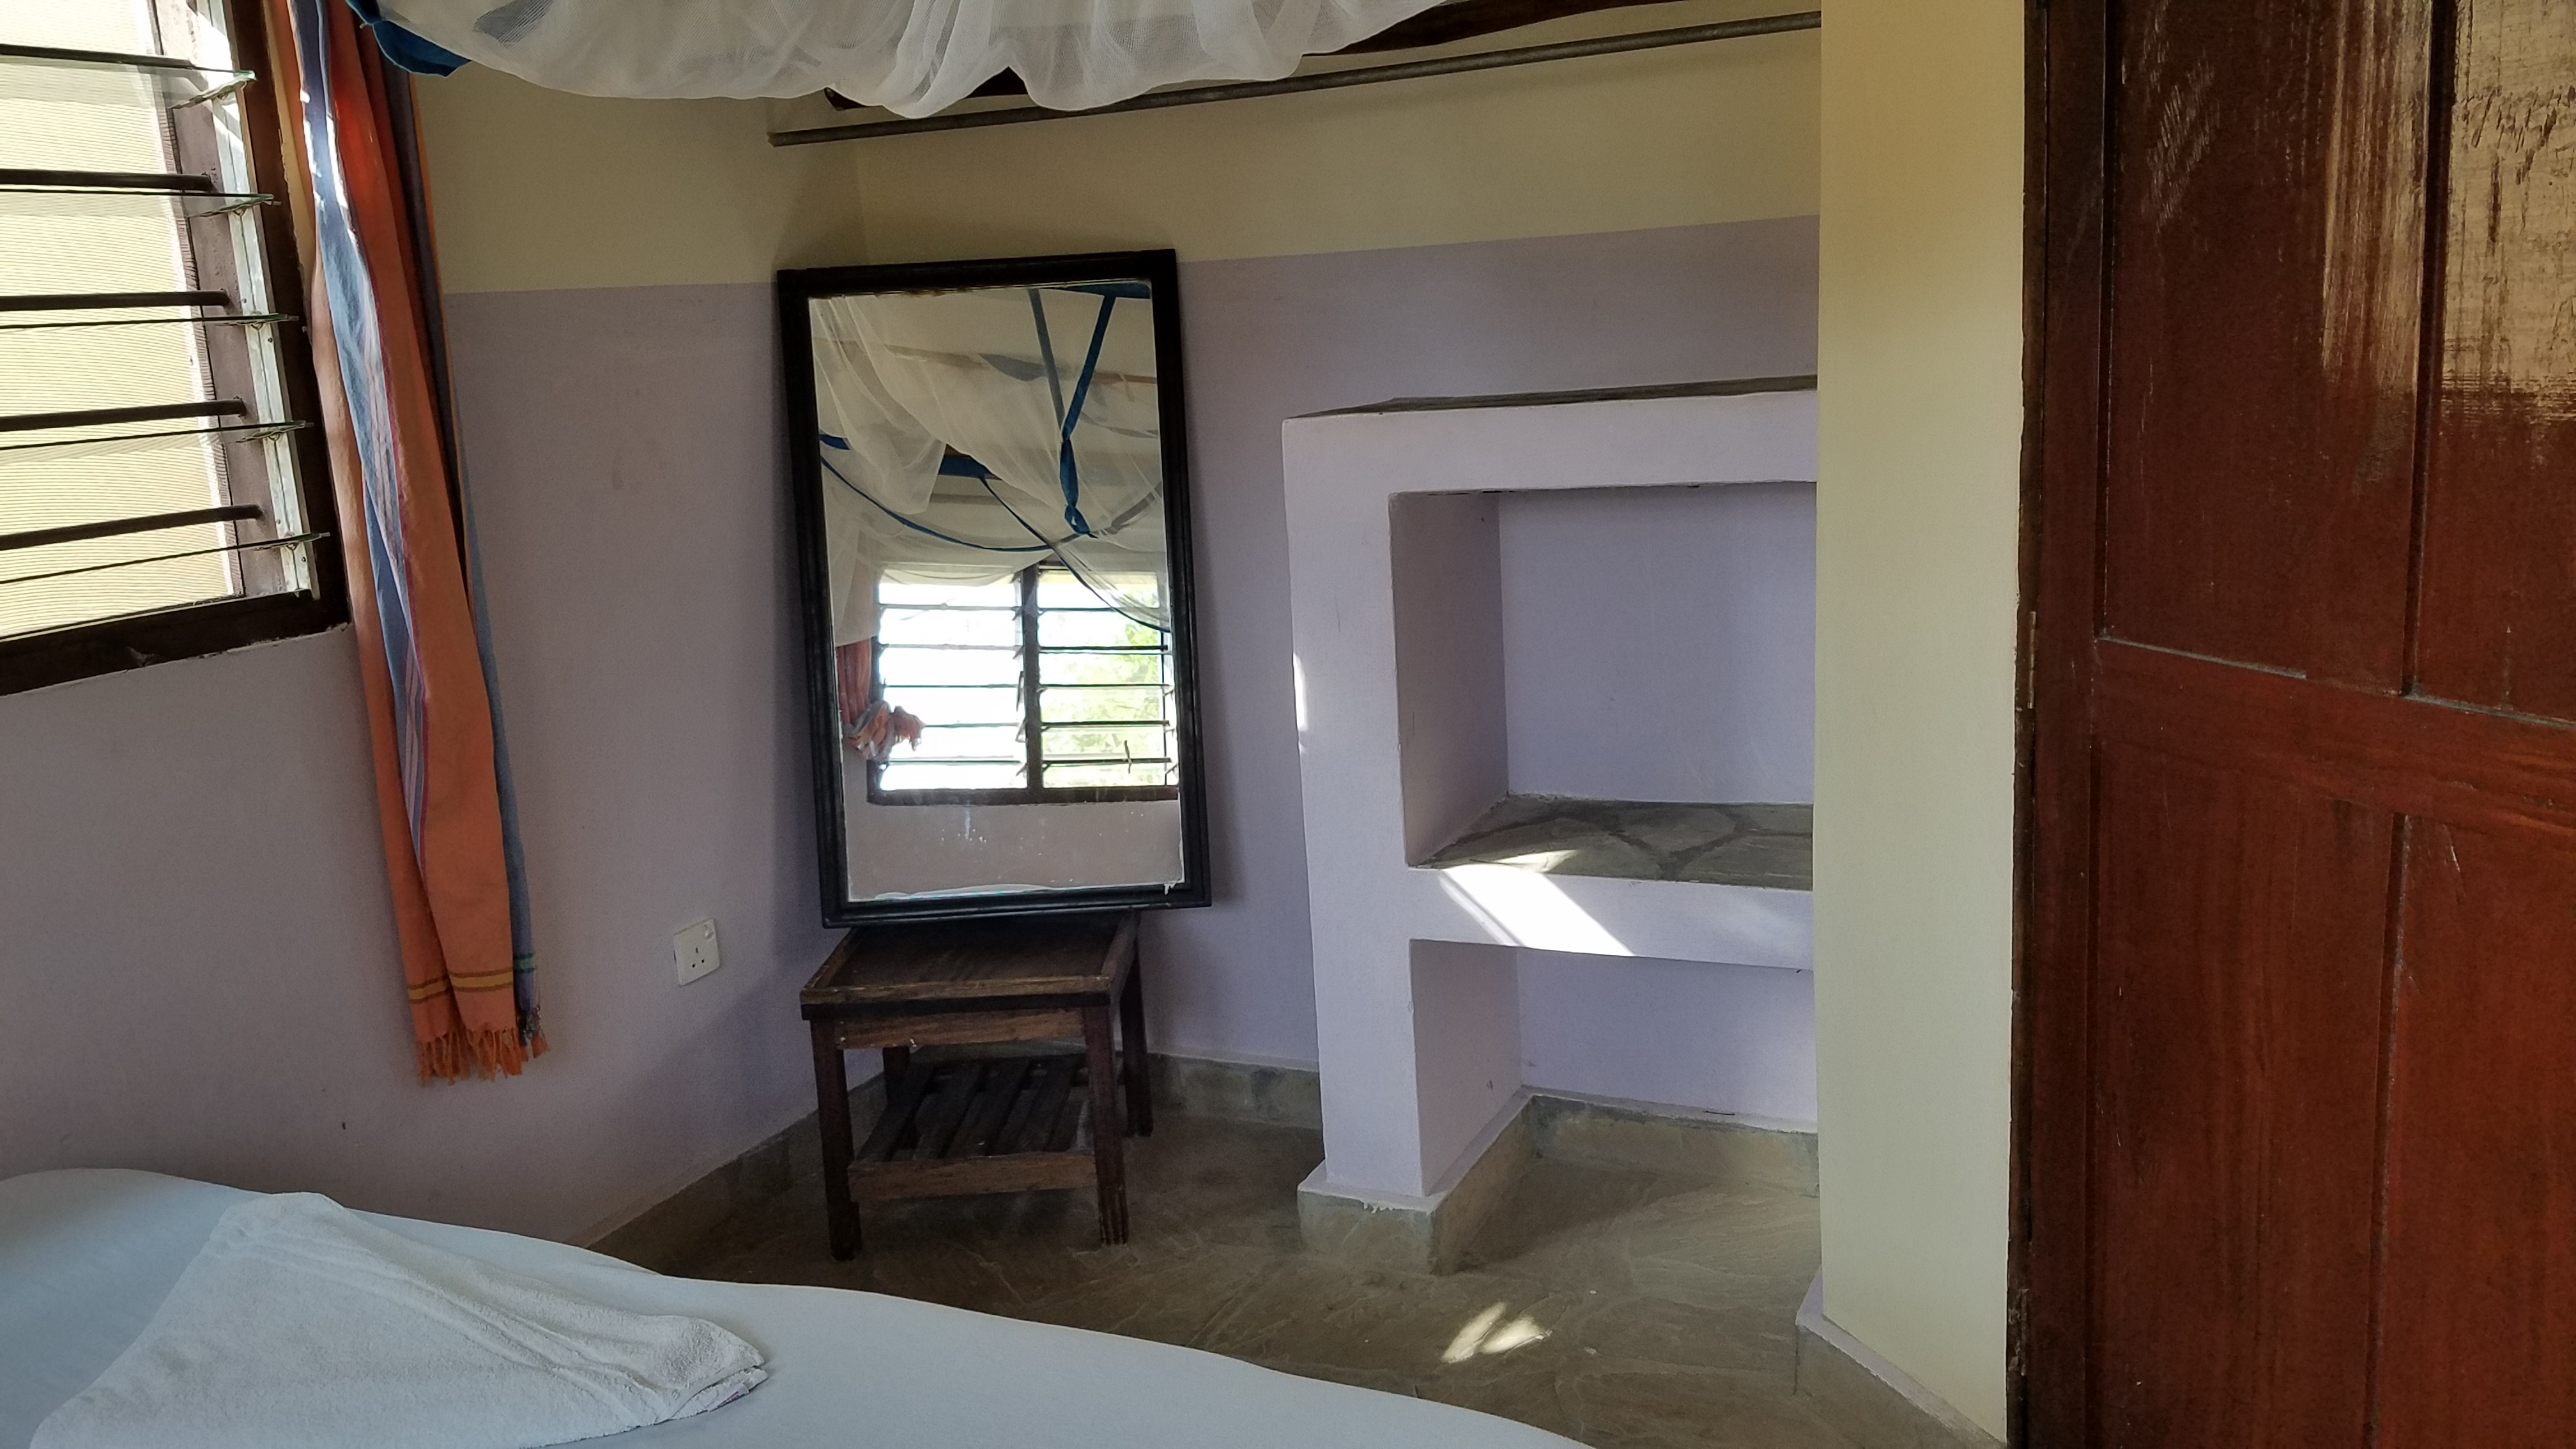 1 Bedroom cottage to let in Diani